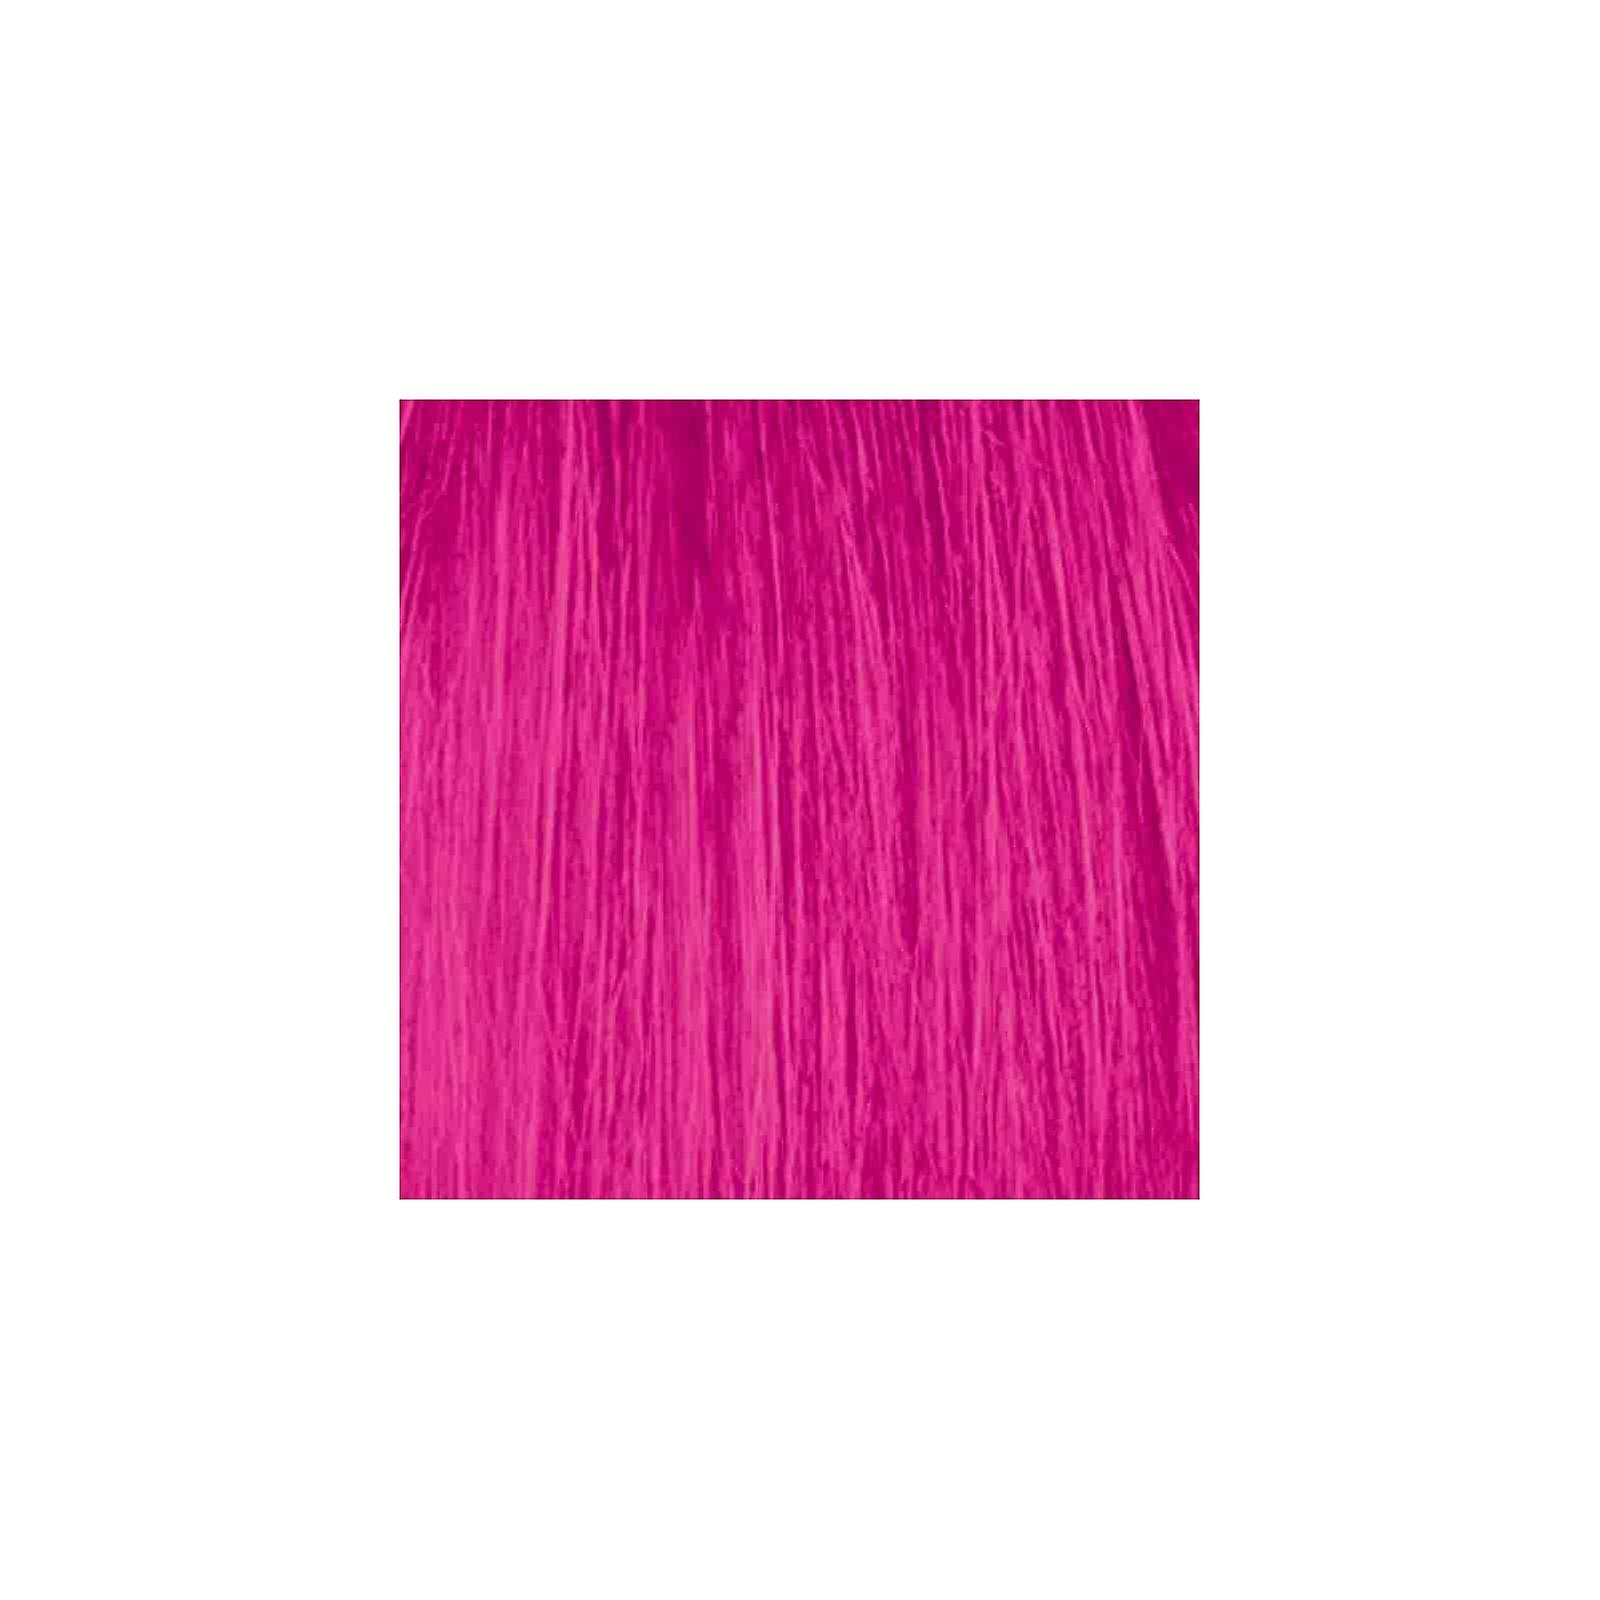 HAIR DYE STARGAZER UV PINK FREE GLOVES